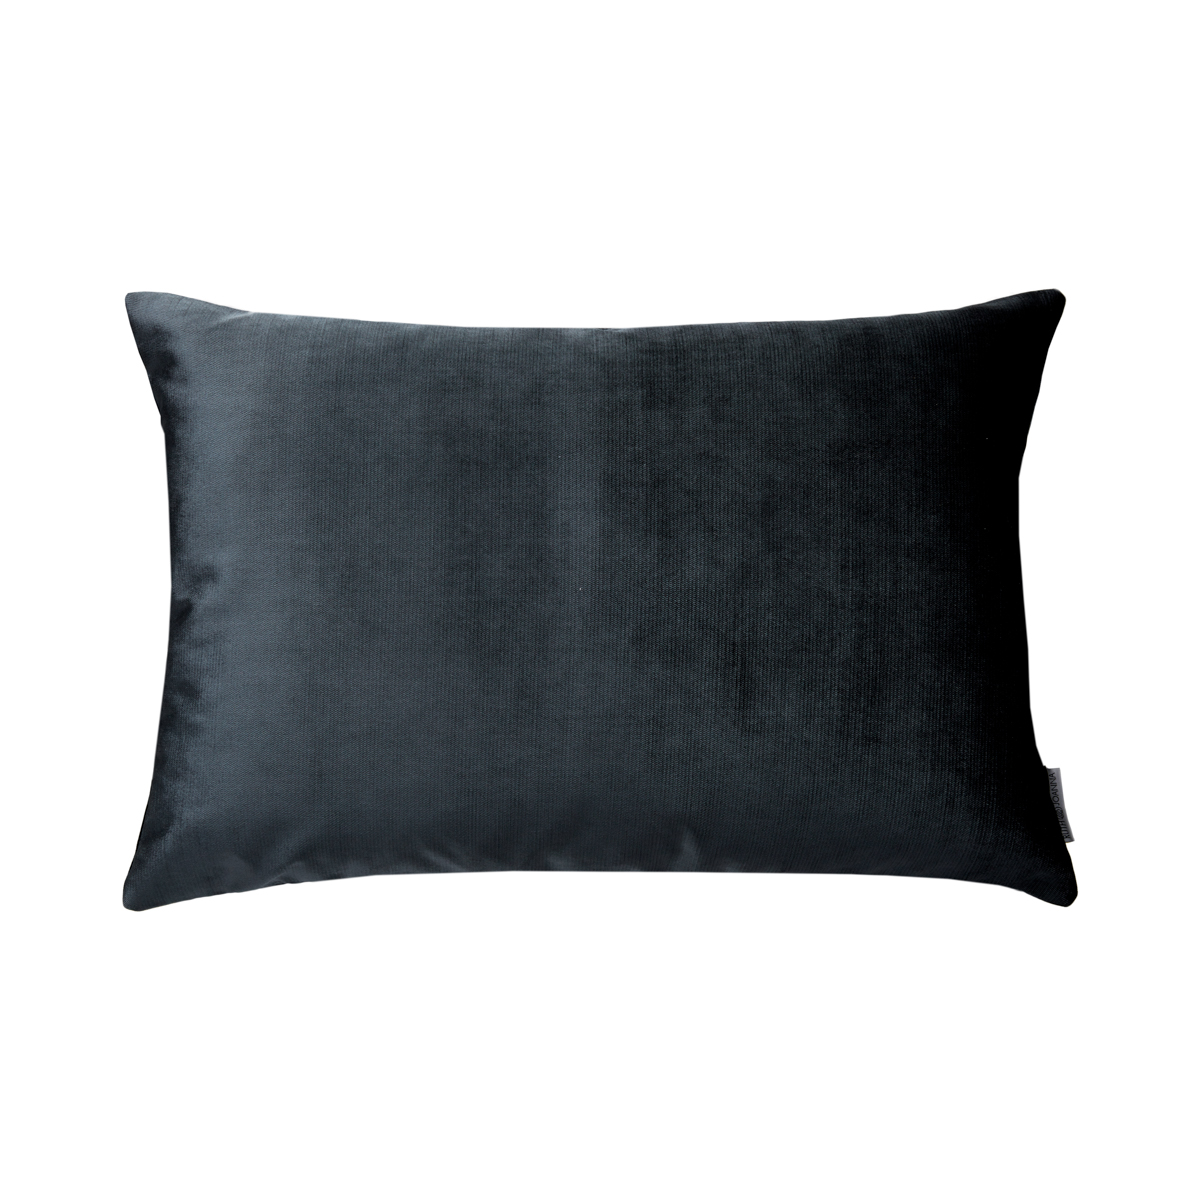 Dark Ocean Pillow